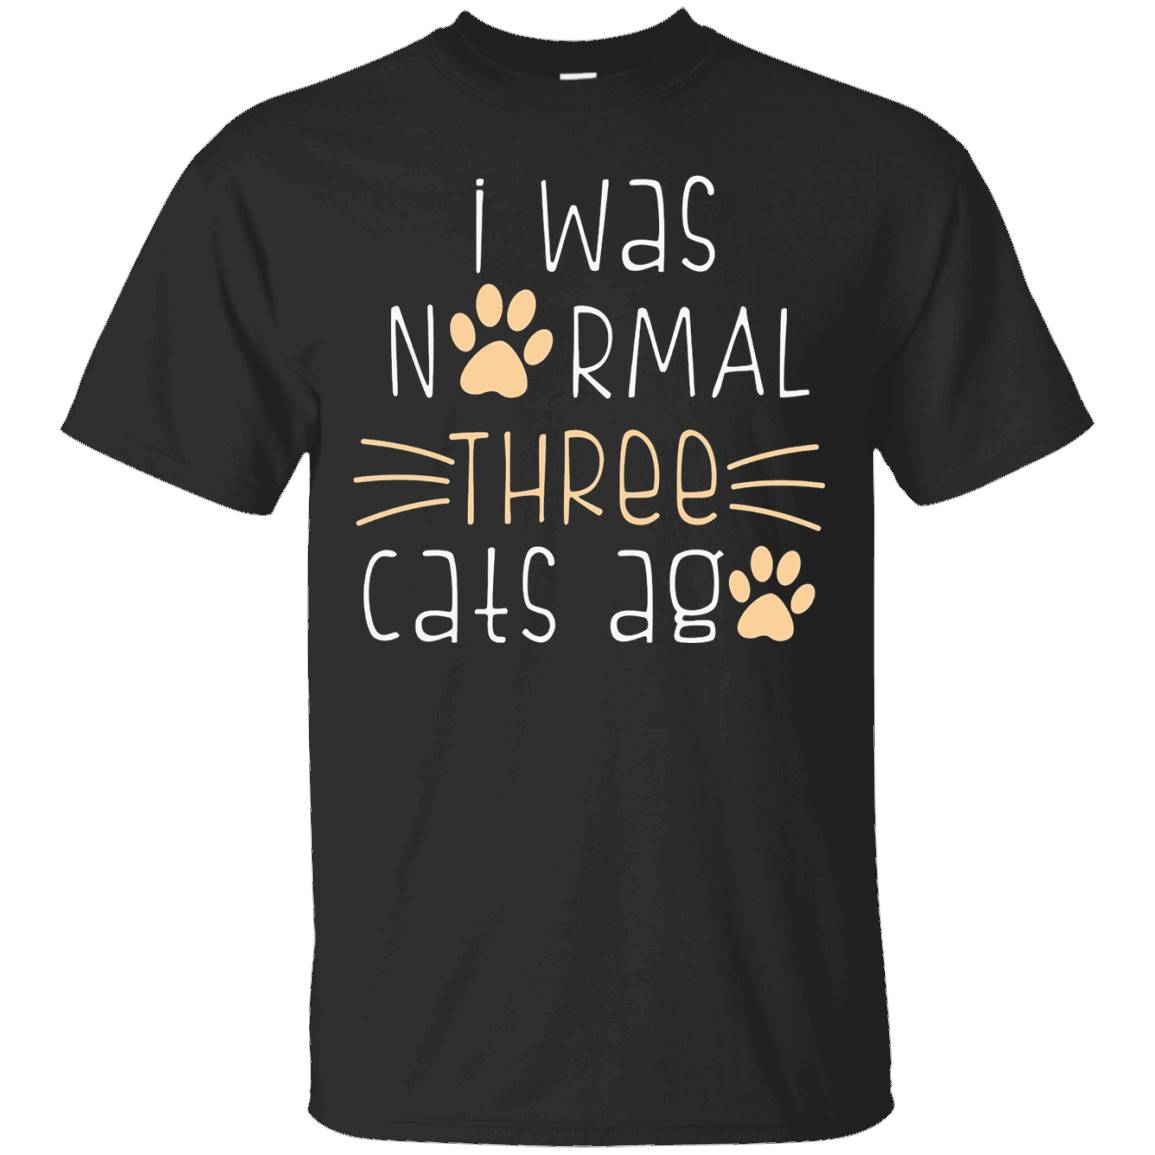 I Was Normal Three Cats Ago T-shirt – T-Shirt